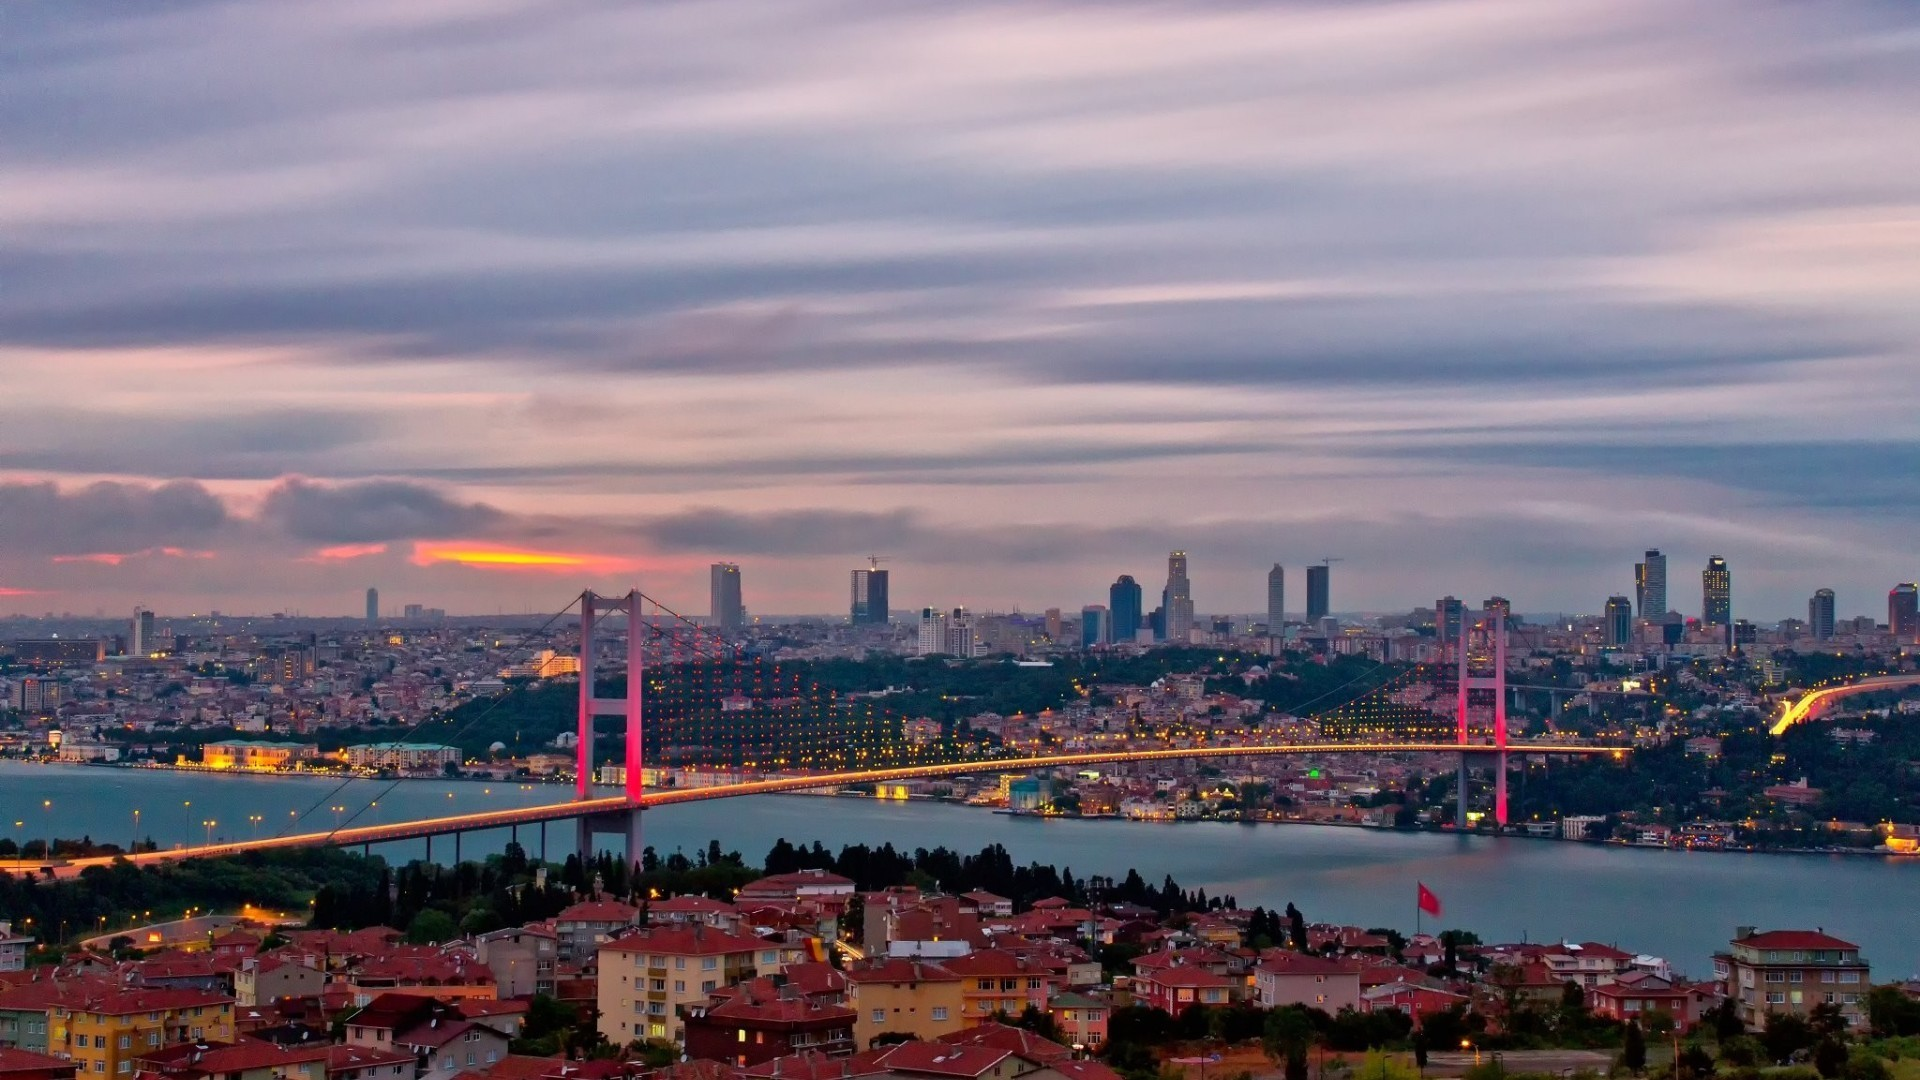 Res: 1920x1080, High Definiton Wallpapers in the Nature Background named as Istanbul, Turkey  Wallpapers in 4K are listed above. We have found some of the best wallpapers  ...